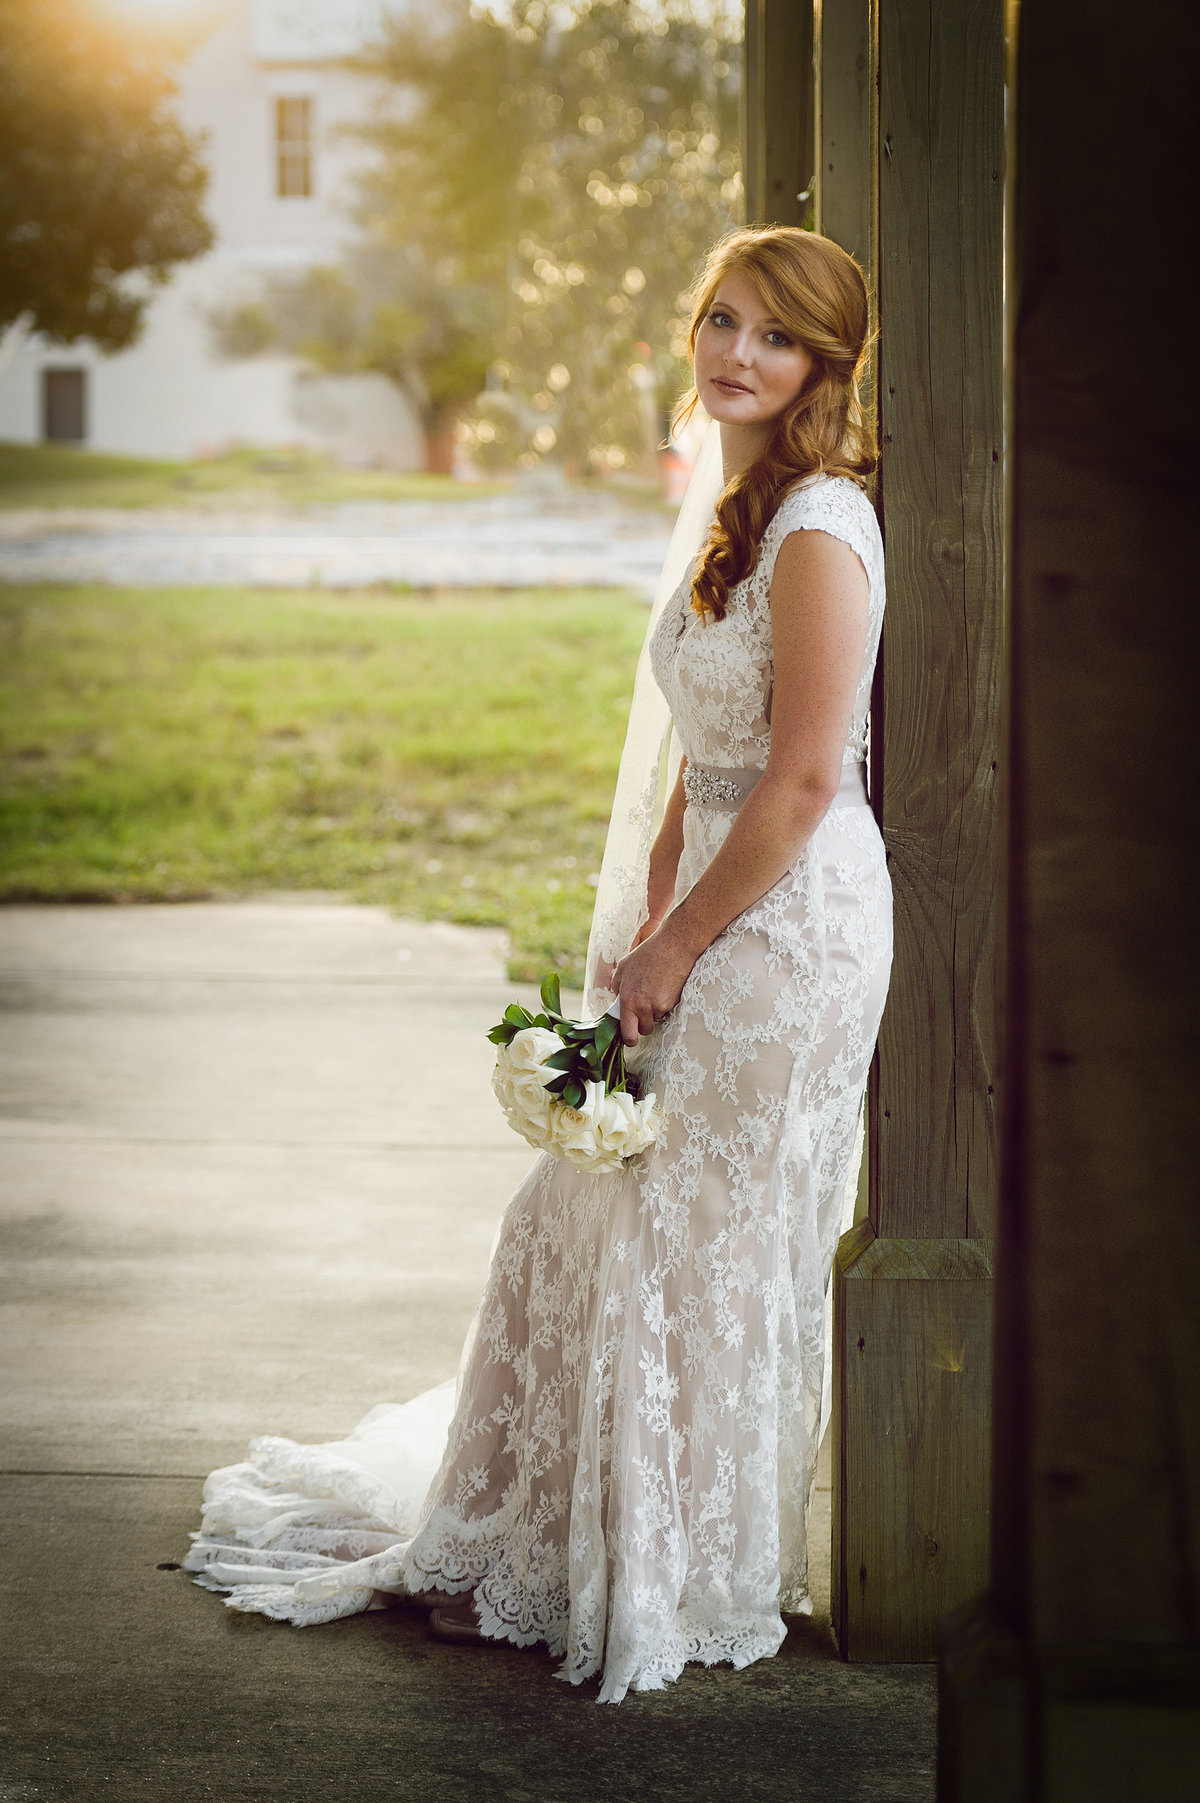 Courtney_Bridal-0029